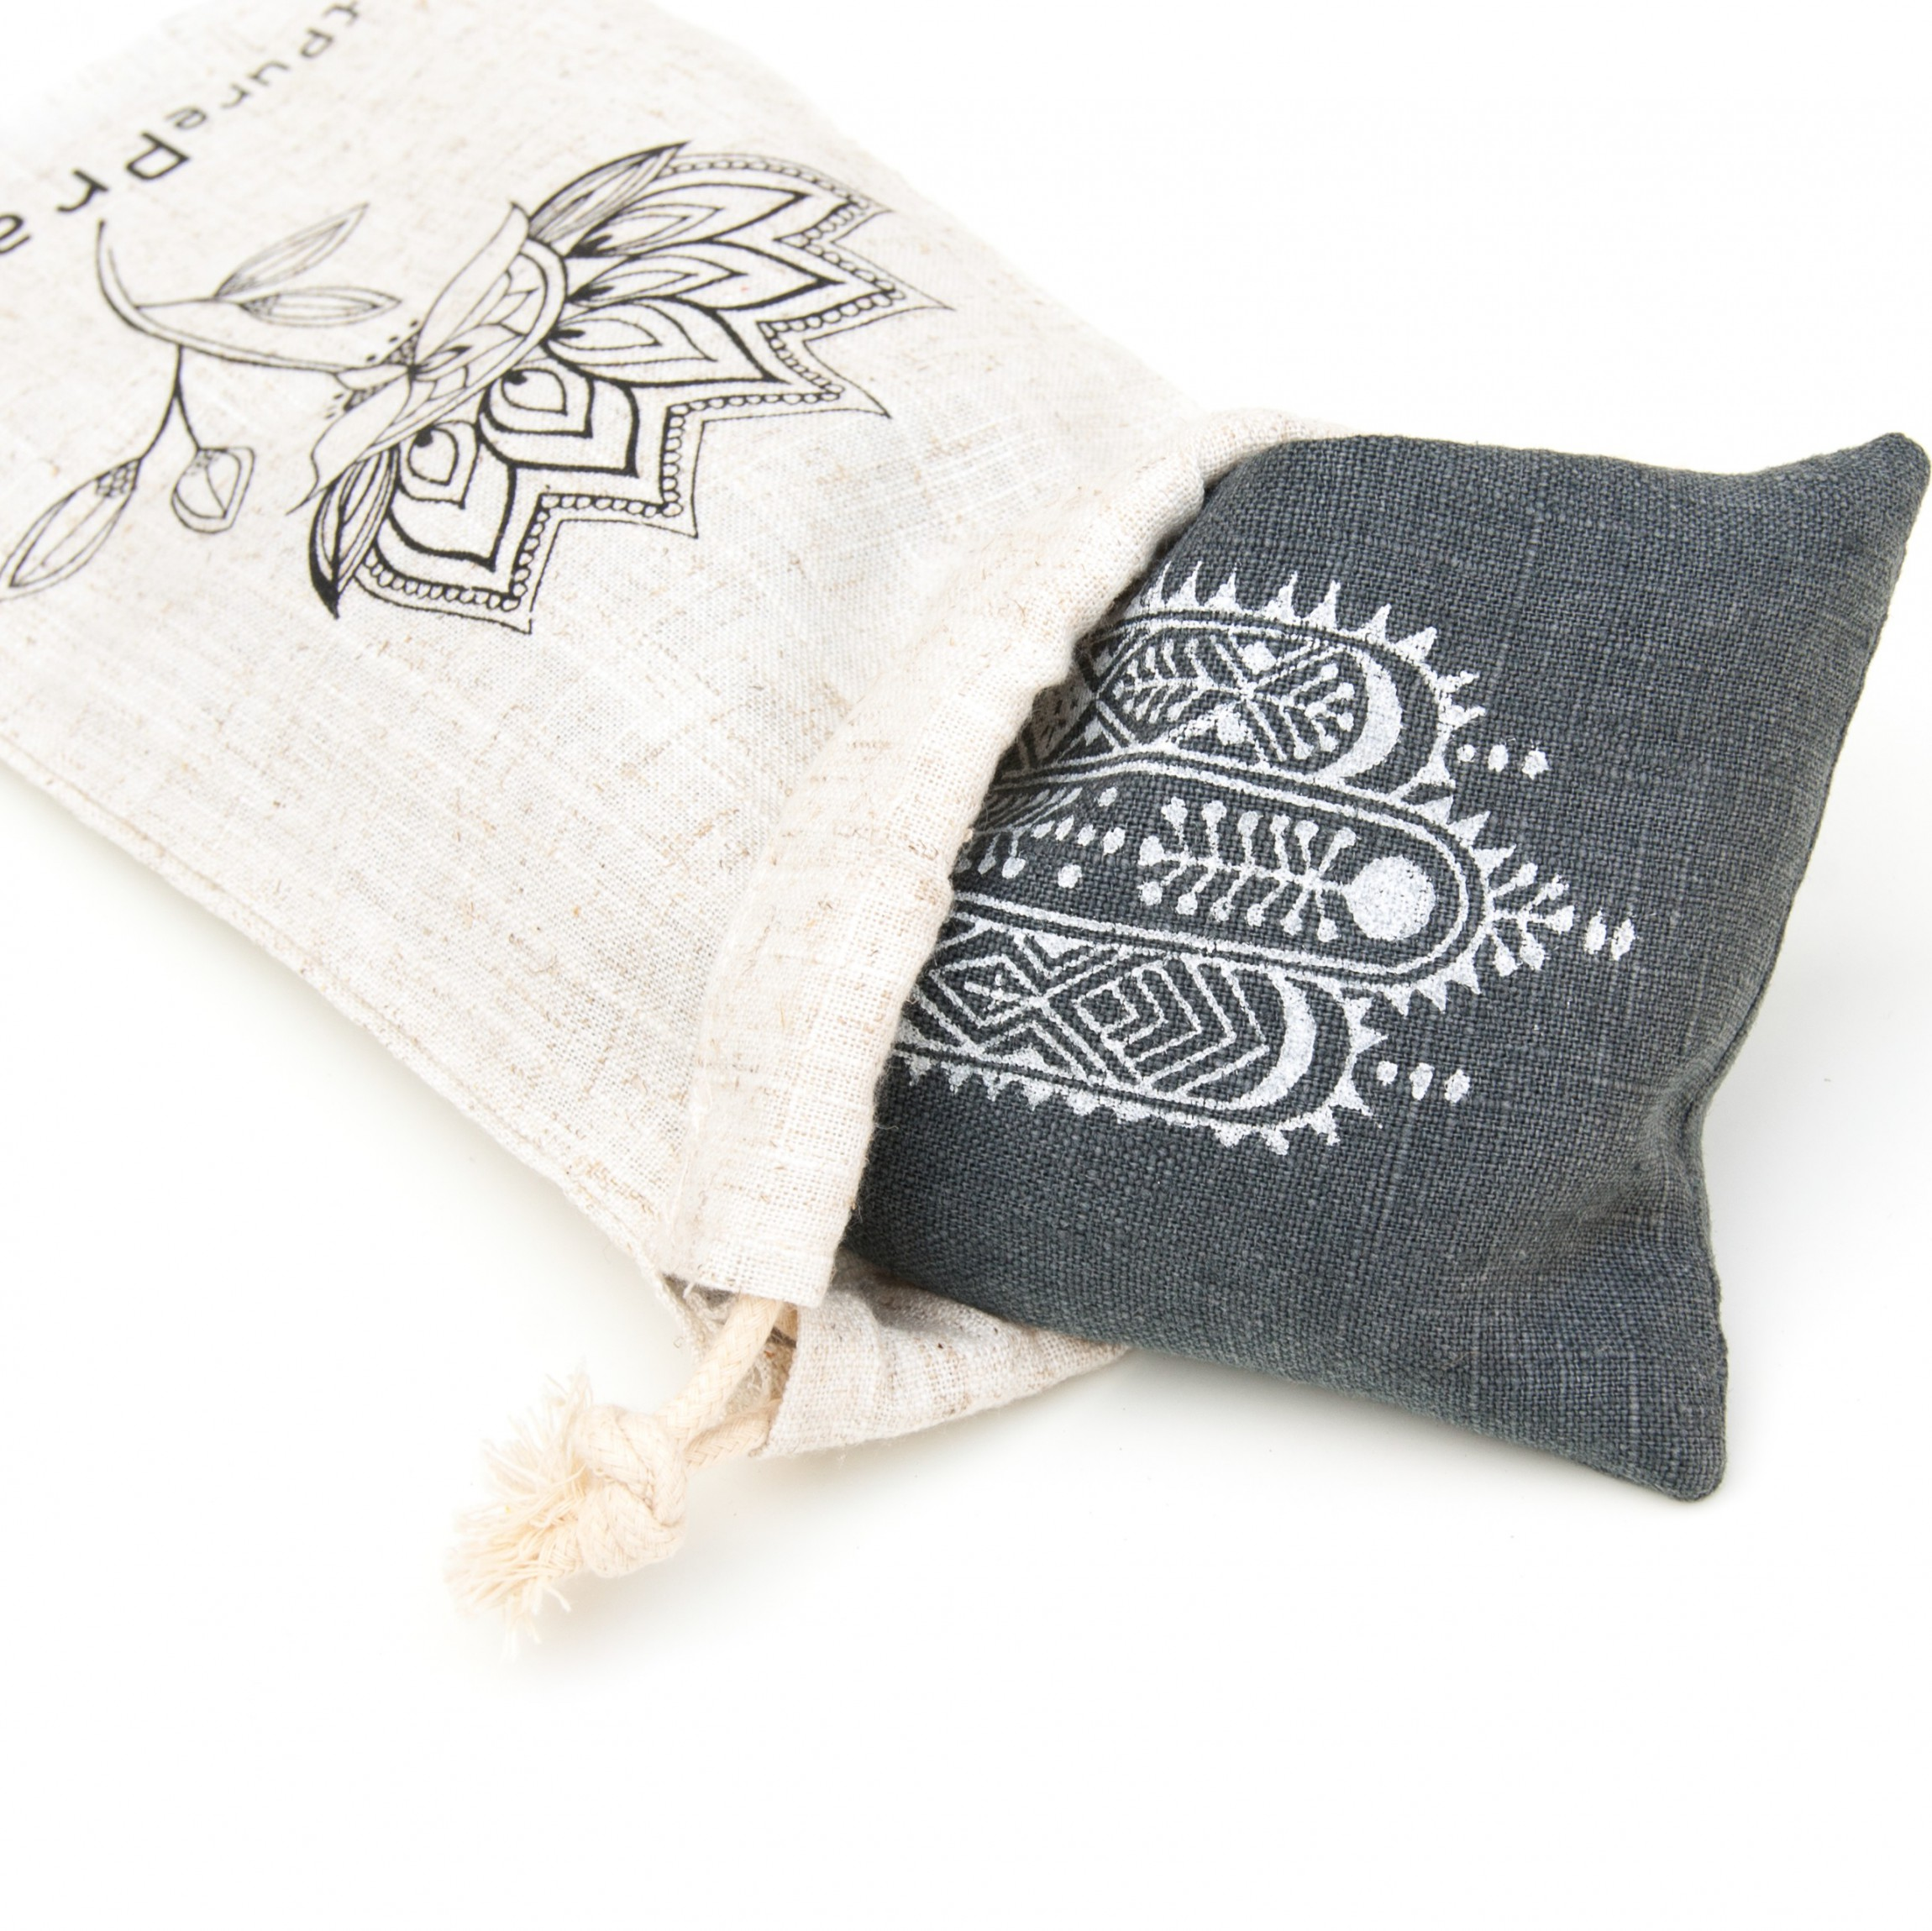 Your lavender eye pillow comes with a linen pouch to travel and take to class.